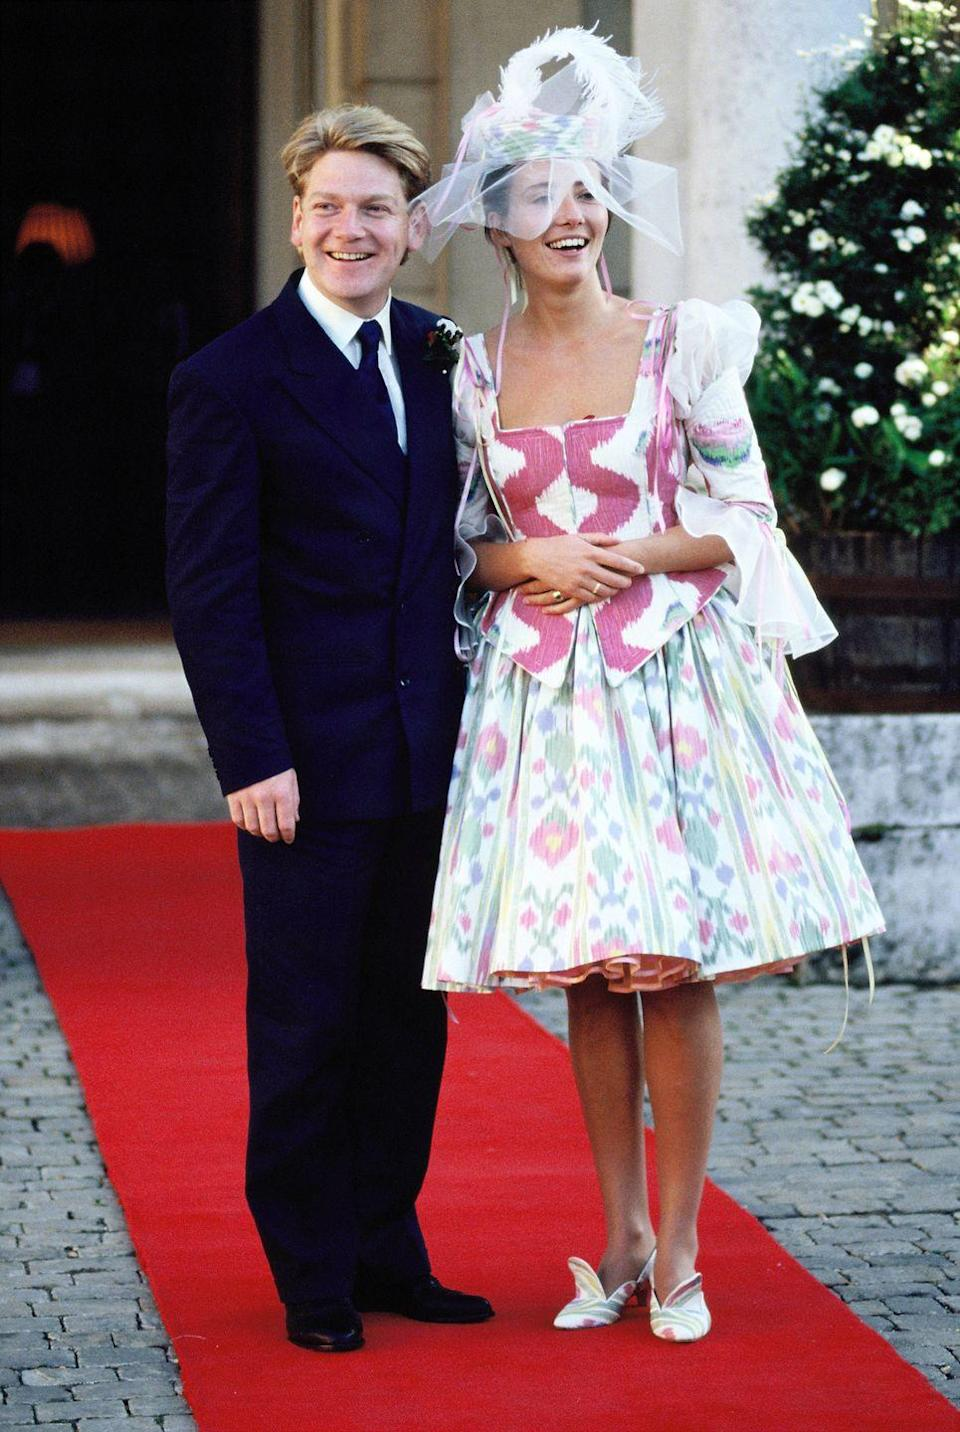 "<p>When Emma Thompson married Irish actor Kenneth Branagh in 1989, it's unlikely that anyone expected her to walk down the aisle in a multicolored dress featuring a squiggly pink bodice. To be fair to Emma Thompson, the <a href=""https://www.goodhousekeeping.com/beauty/fashion/g2803/bad-90s-style-fashion-trends/"" rel=""nofollow noopener"" target=""_blank"" data-ylk=""slk:late '80s and early '90s"" class=""link rapid-noclick-resp"">late '80s and early '90s</a> weren't exactly the most fashionable years in history.</p>"